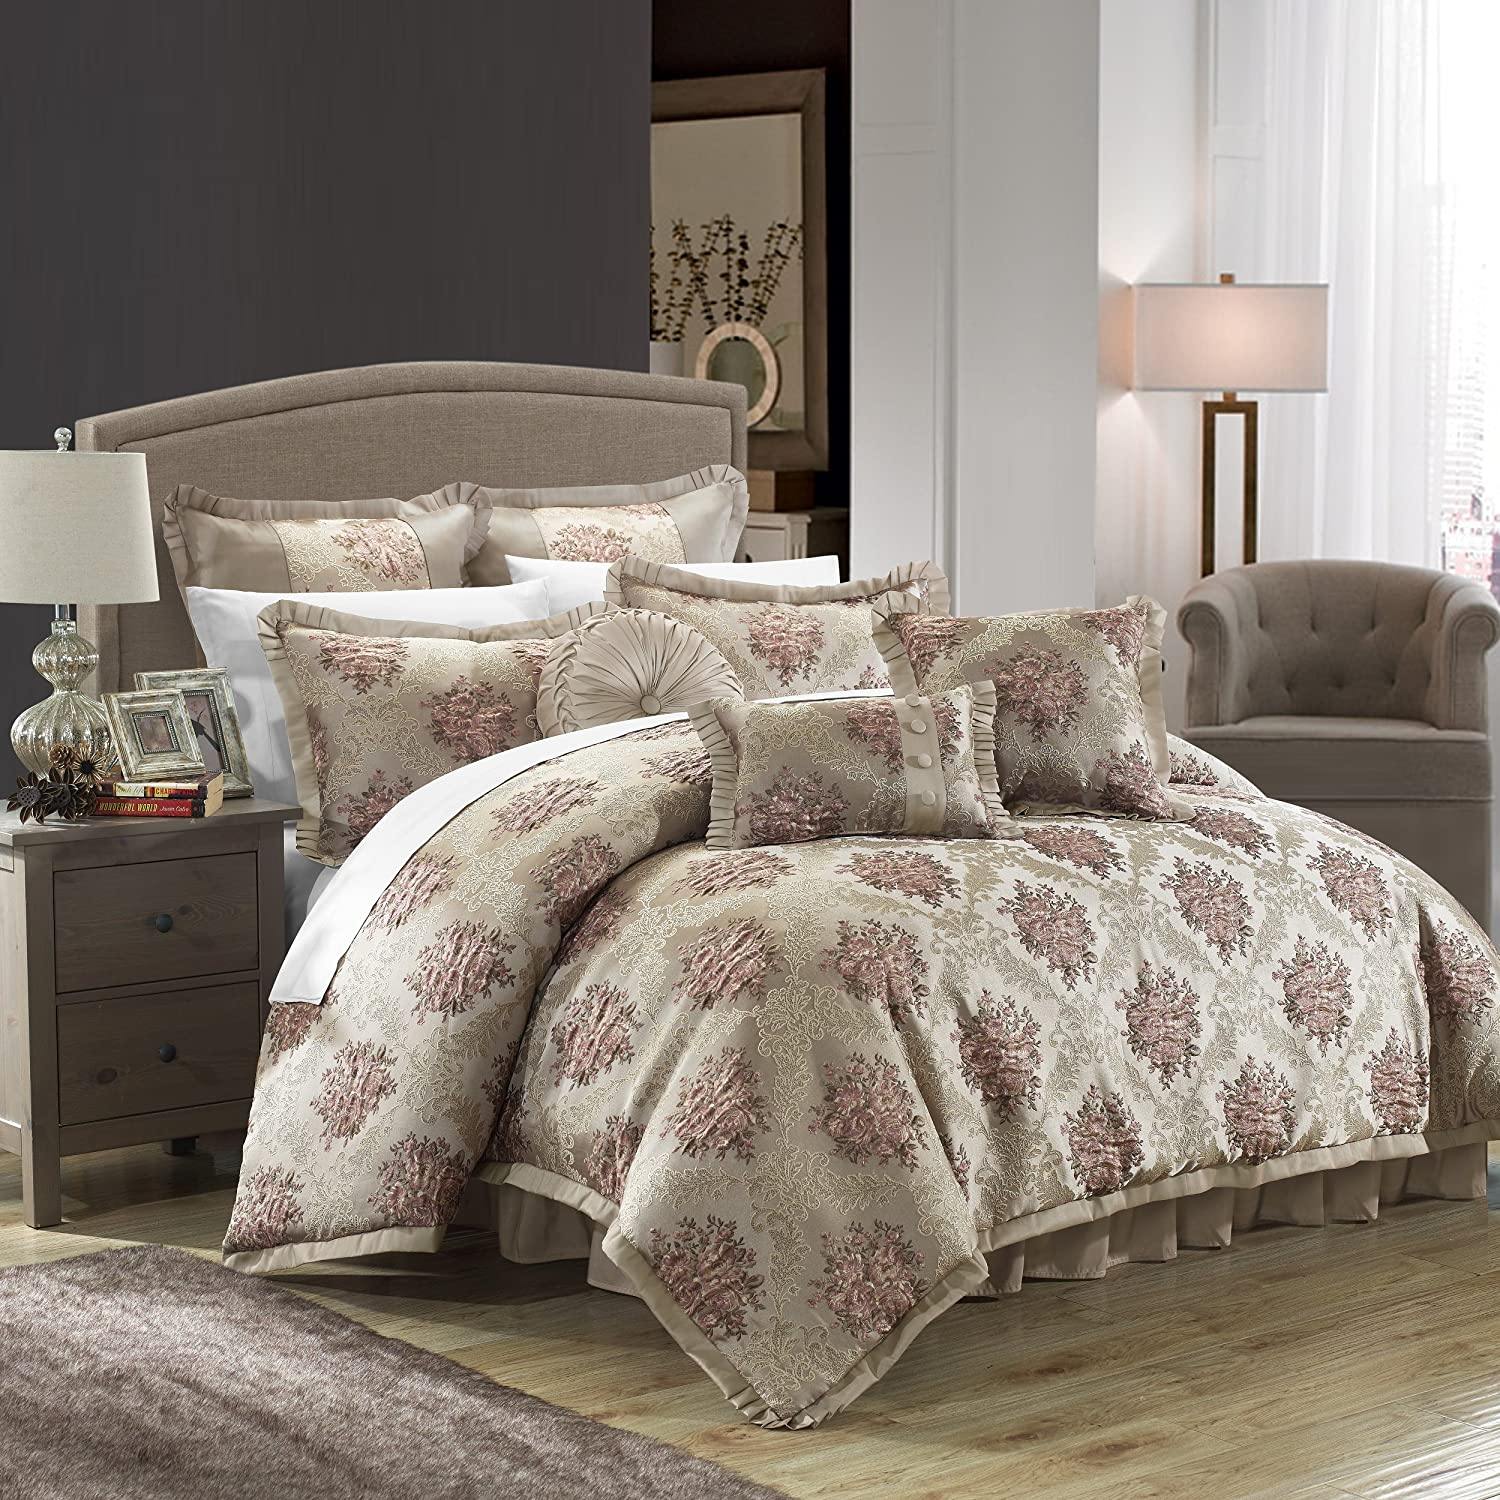 shipping product today sets bdcc bath cdu comforter free overstock bedding duchess set piece